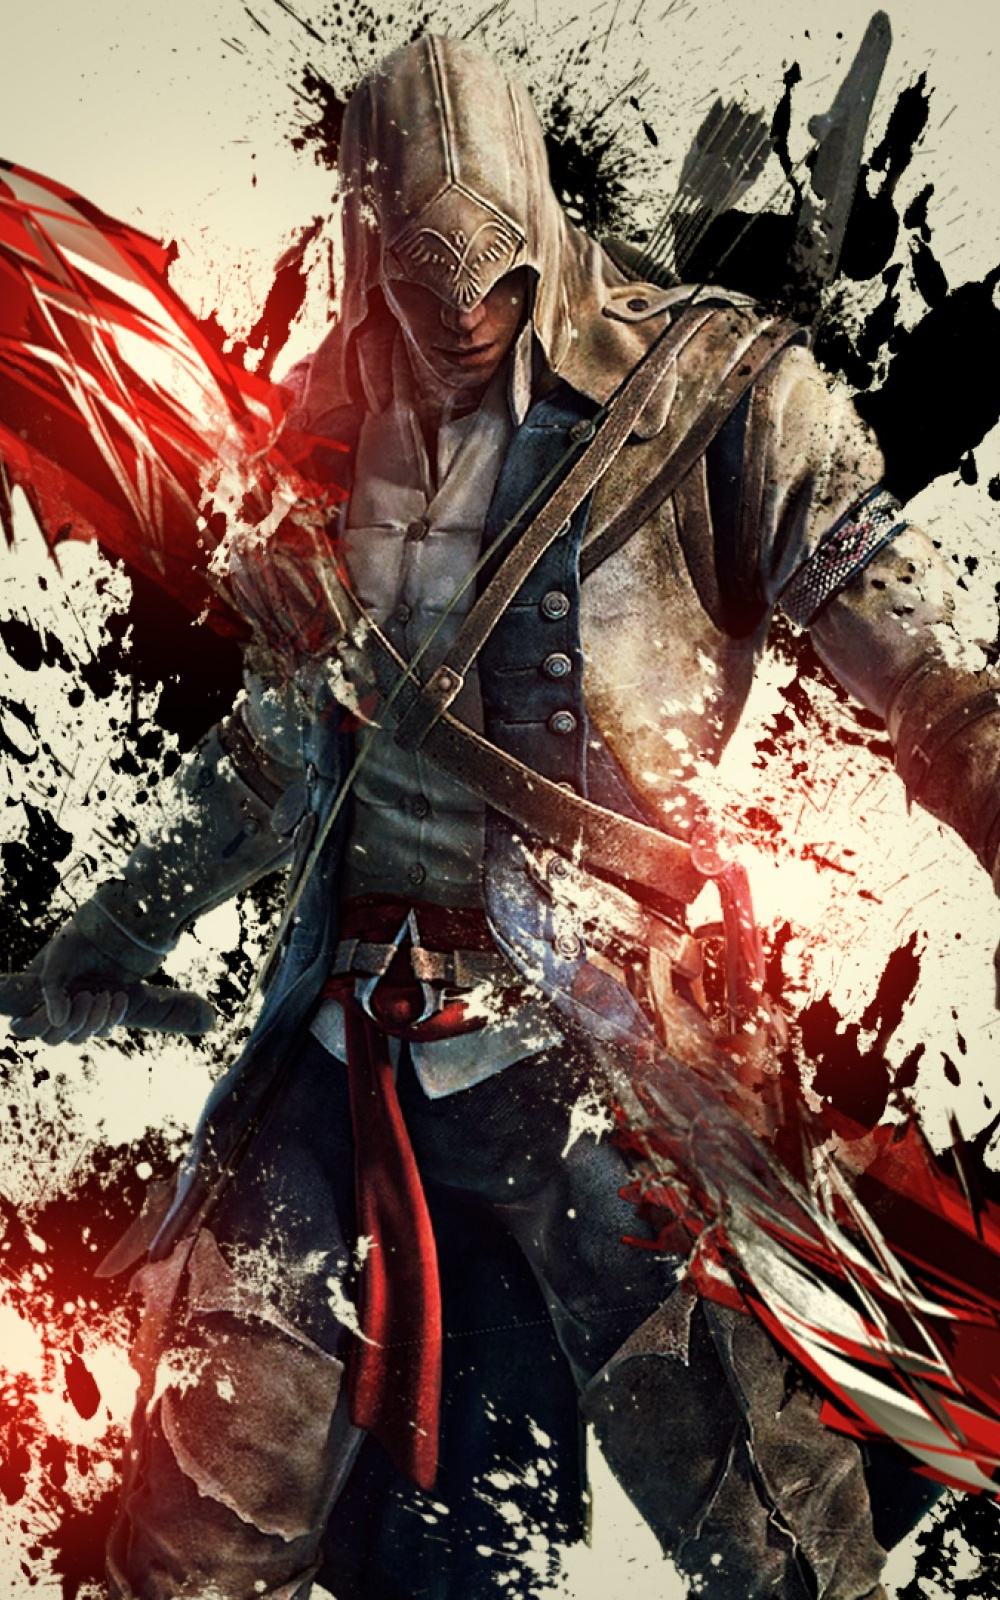 Assassins character